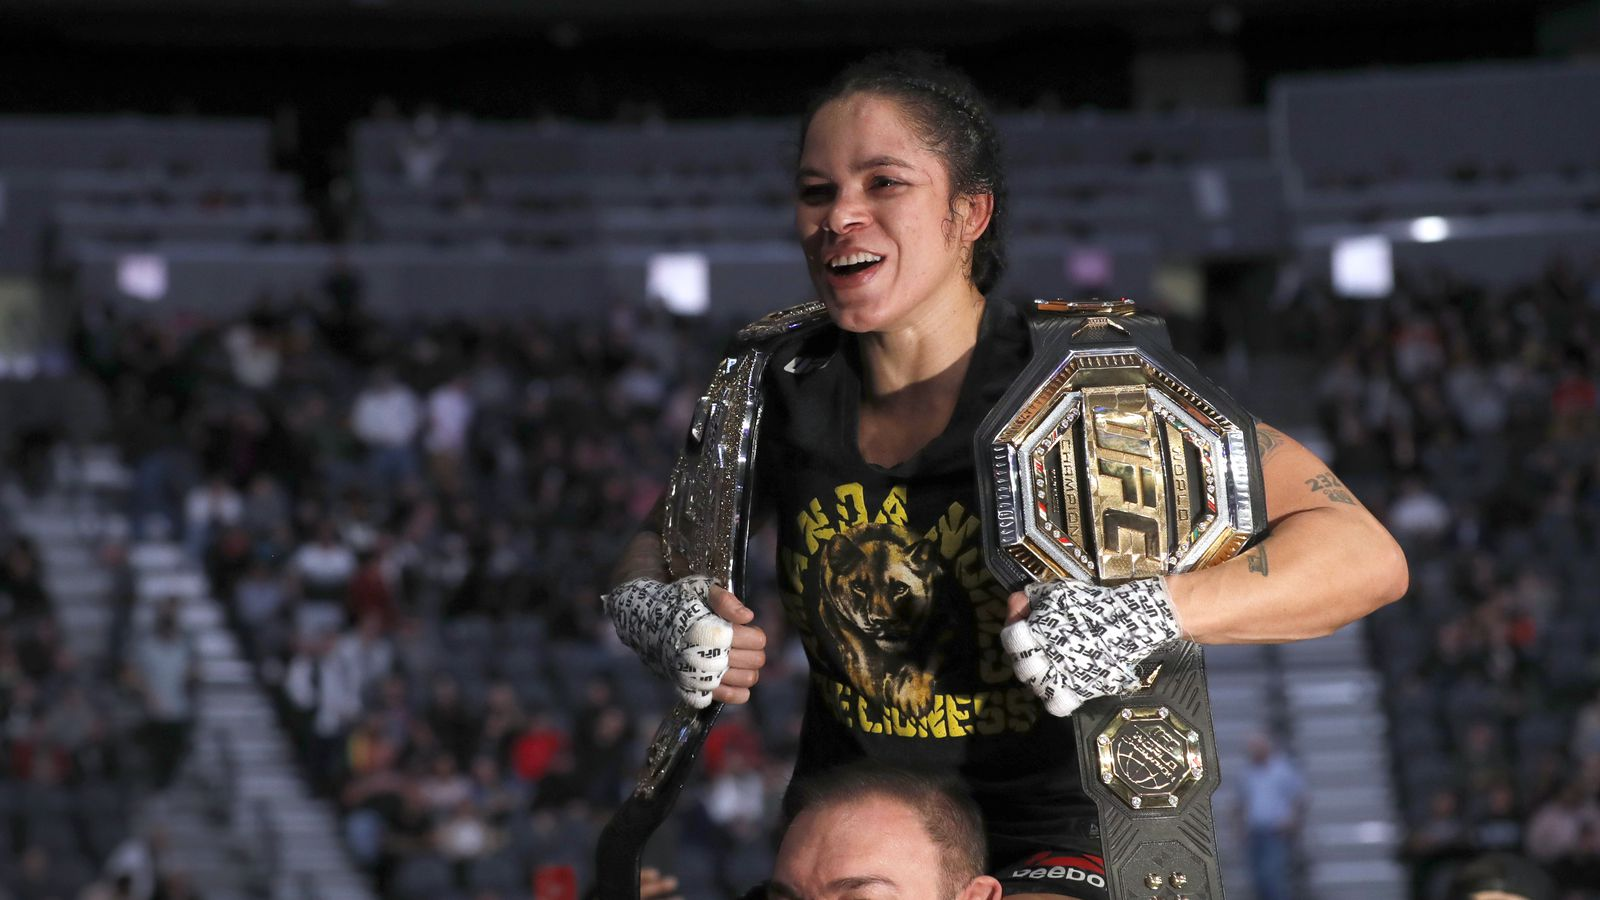 'Excited' Amanda Nunes expected to defend featherweight title at UFC 250 in Brazil